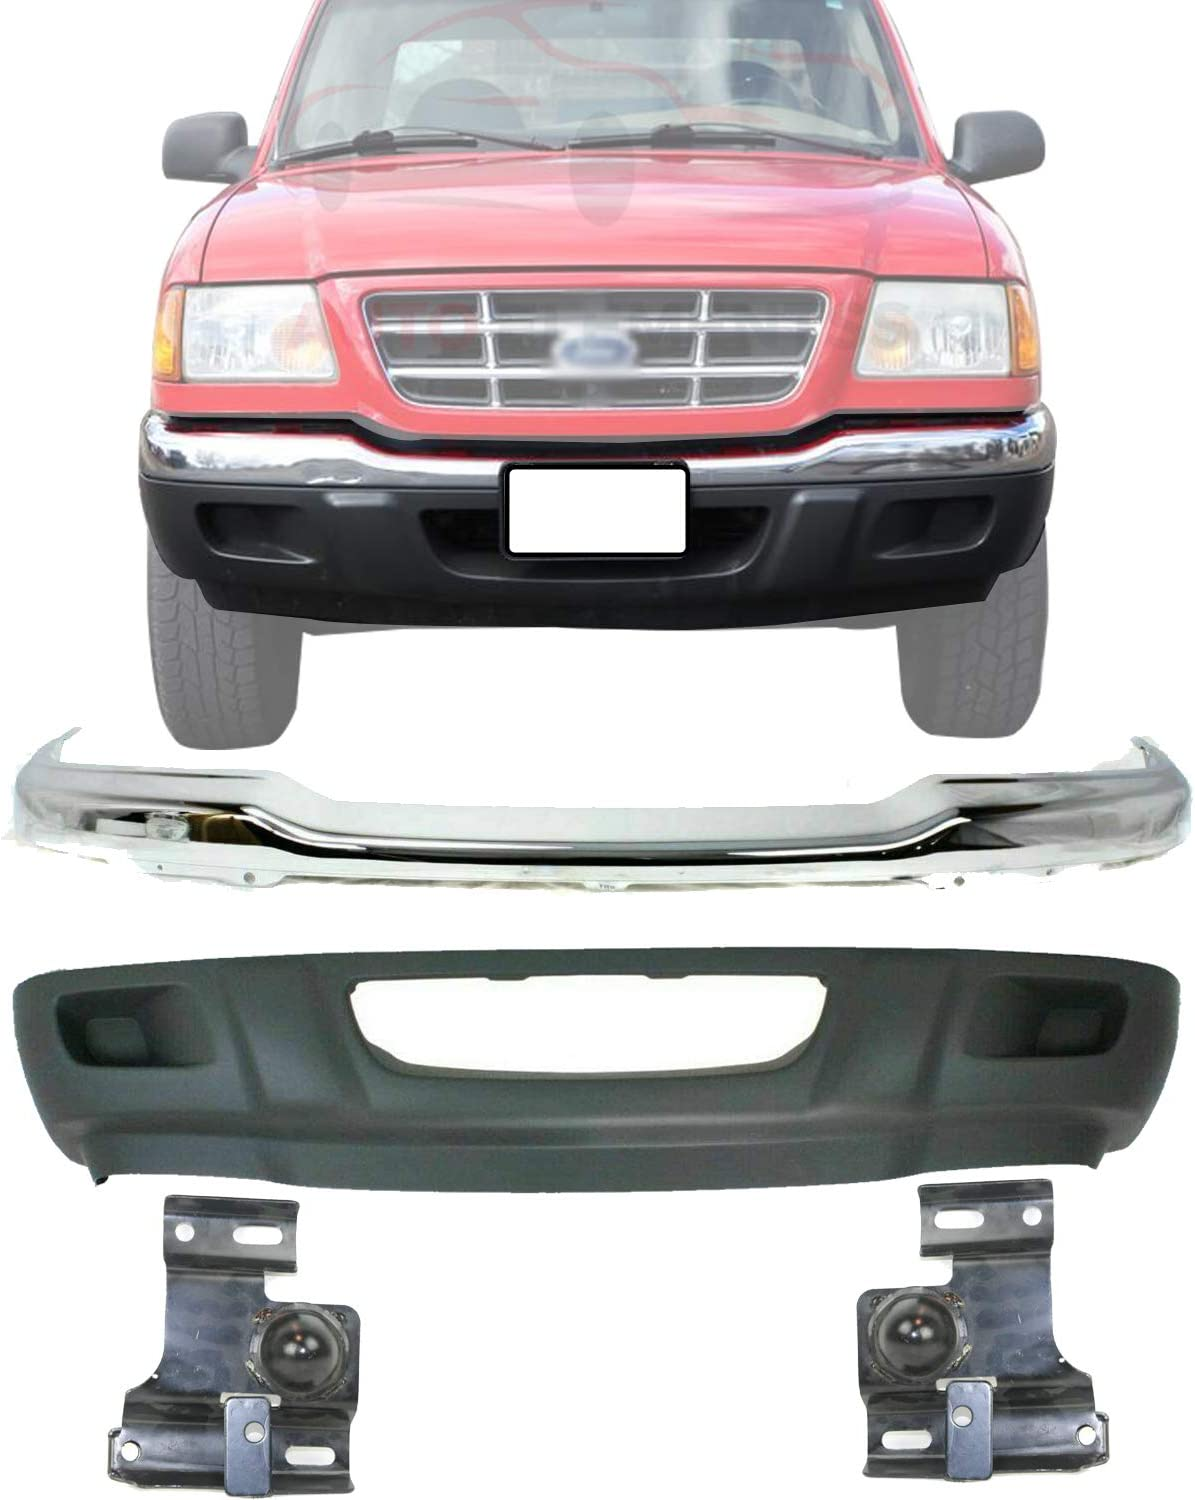 New Front Bumper Max 79% OFF Chrome Steel + Lower Brackets P Seasonal Wrap Introduction Valance Right